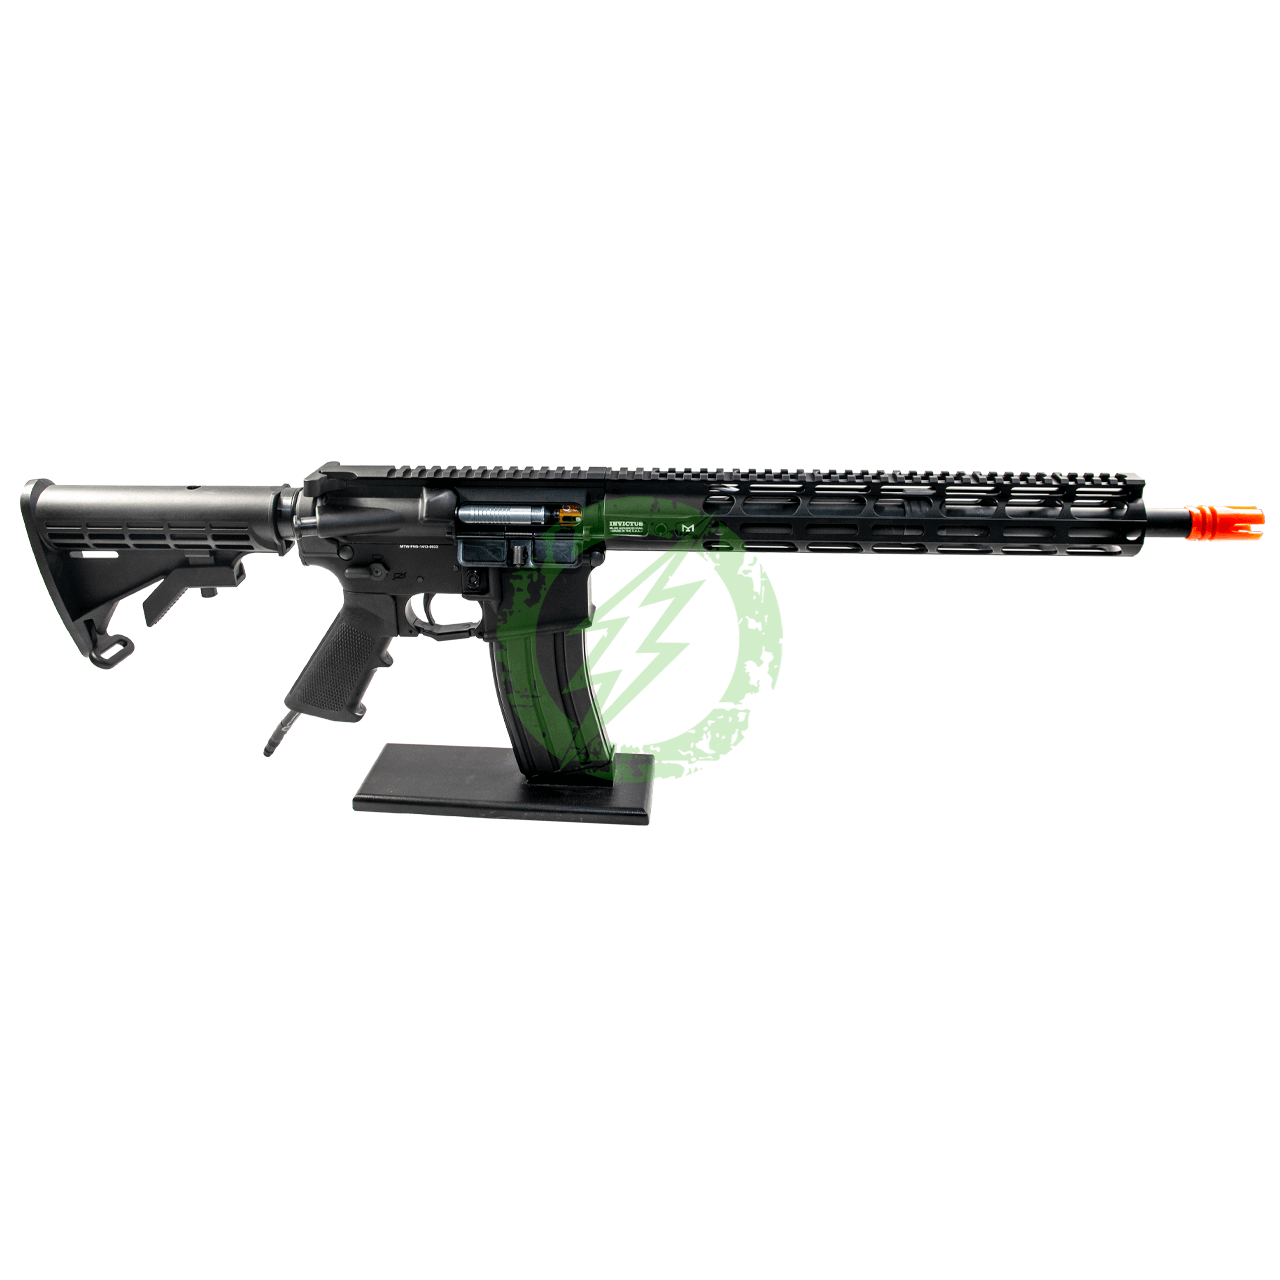 "Wolverine Airsoft MTW FORGED Edition | 14.5"" Barrel right"